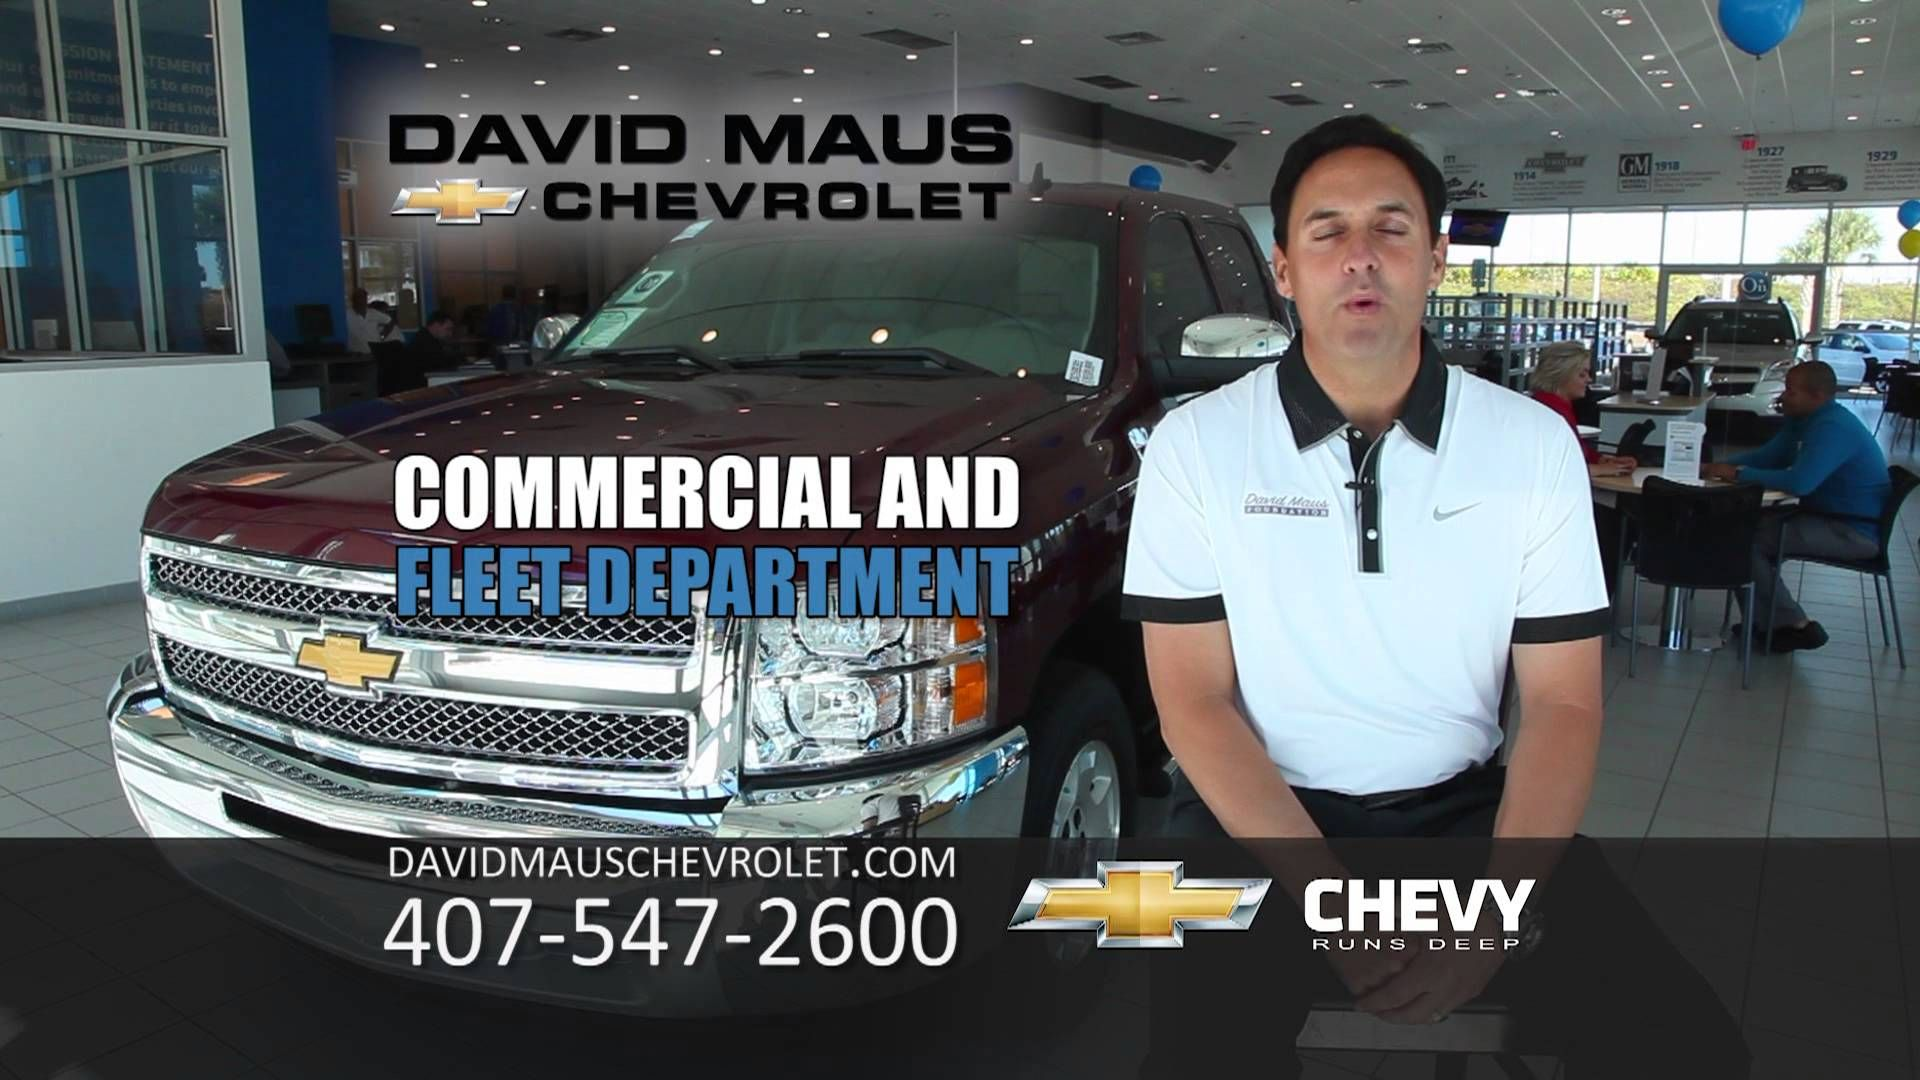 David Maus Chevy >> If You Own A Business David Maus Chevrolet Has A Commercial